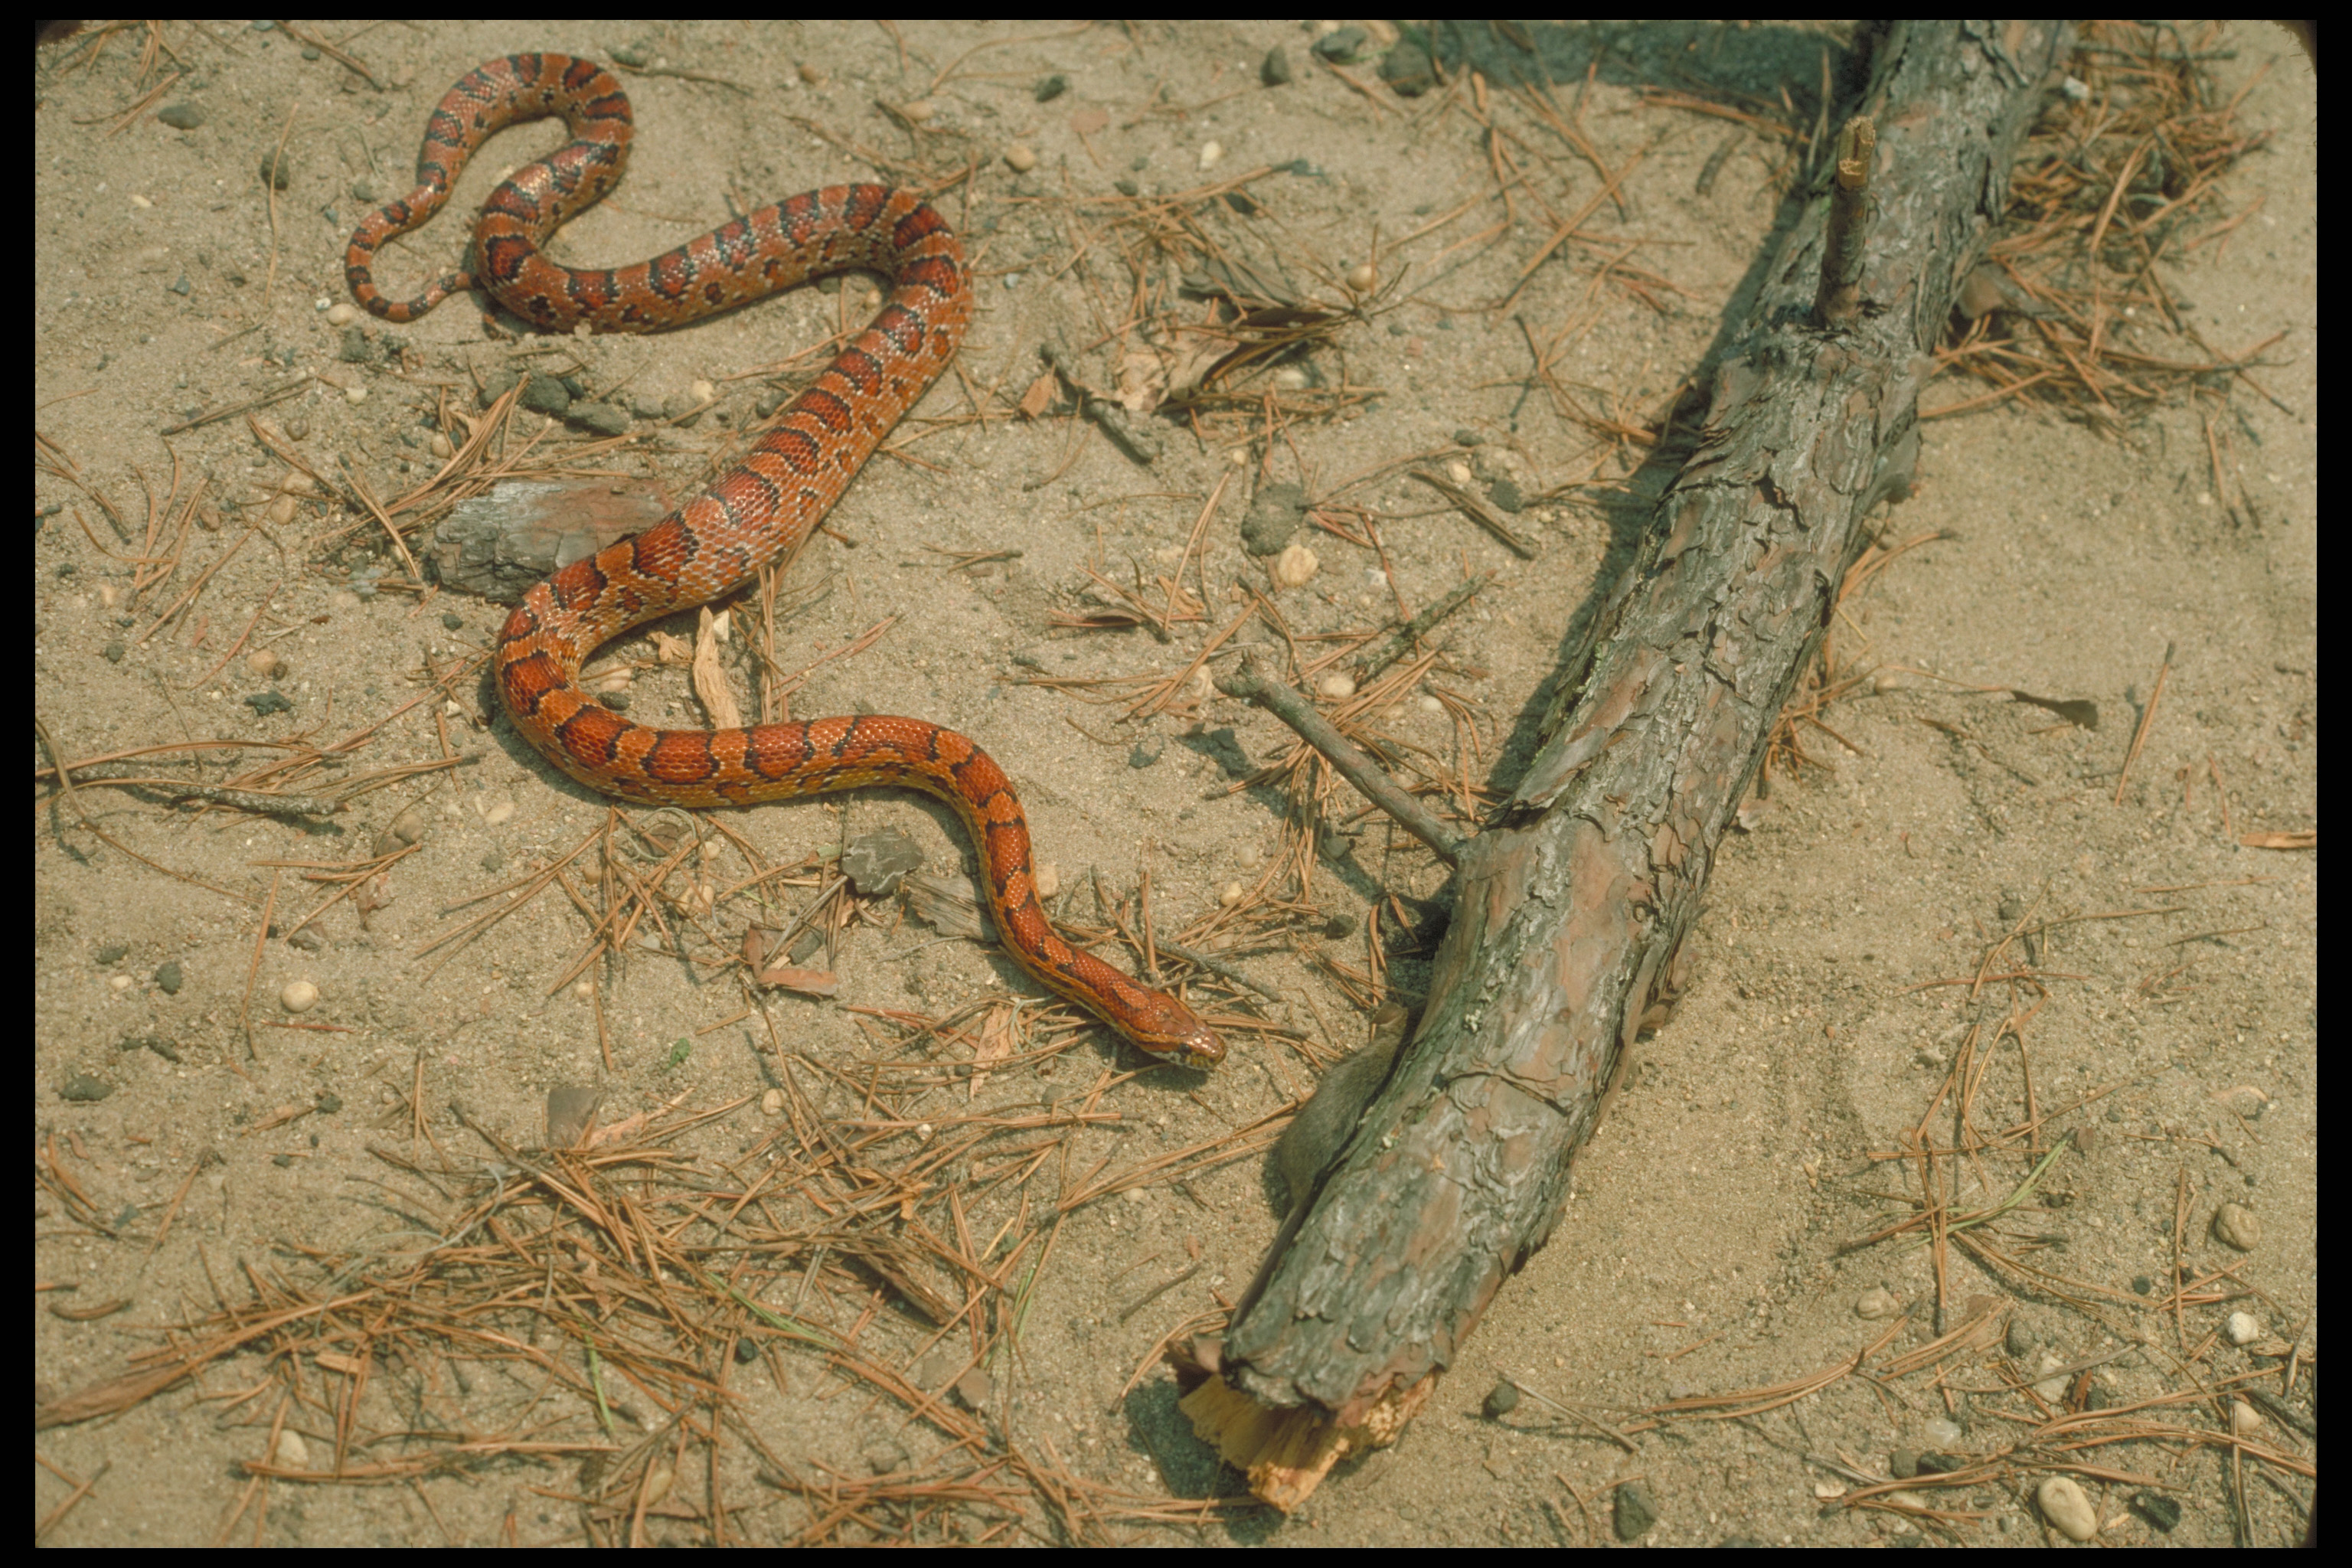 About Corn Snakes, Breeding Corn Snakes